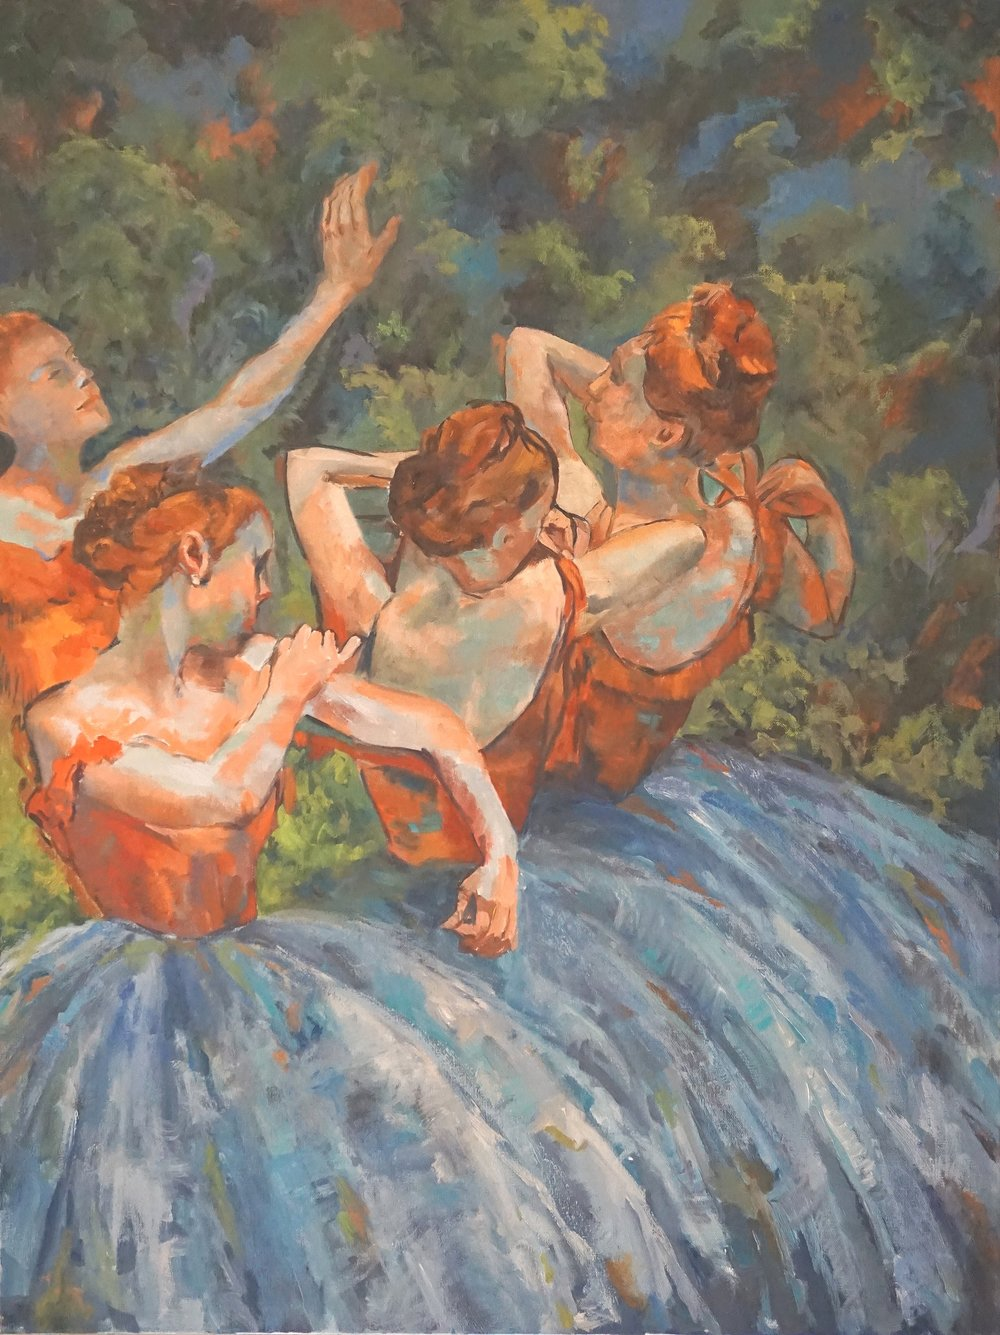 Interpretation of Edgar Degas